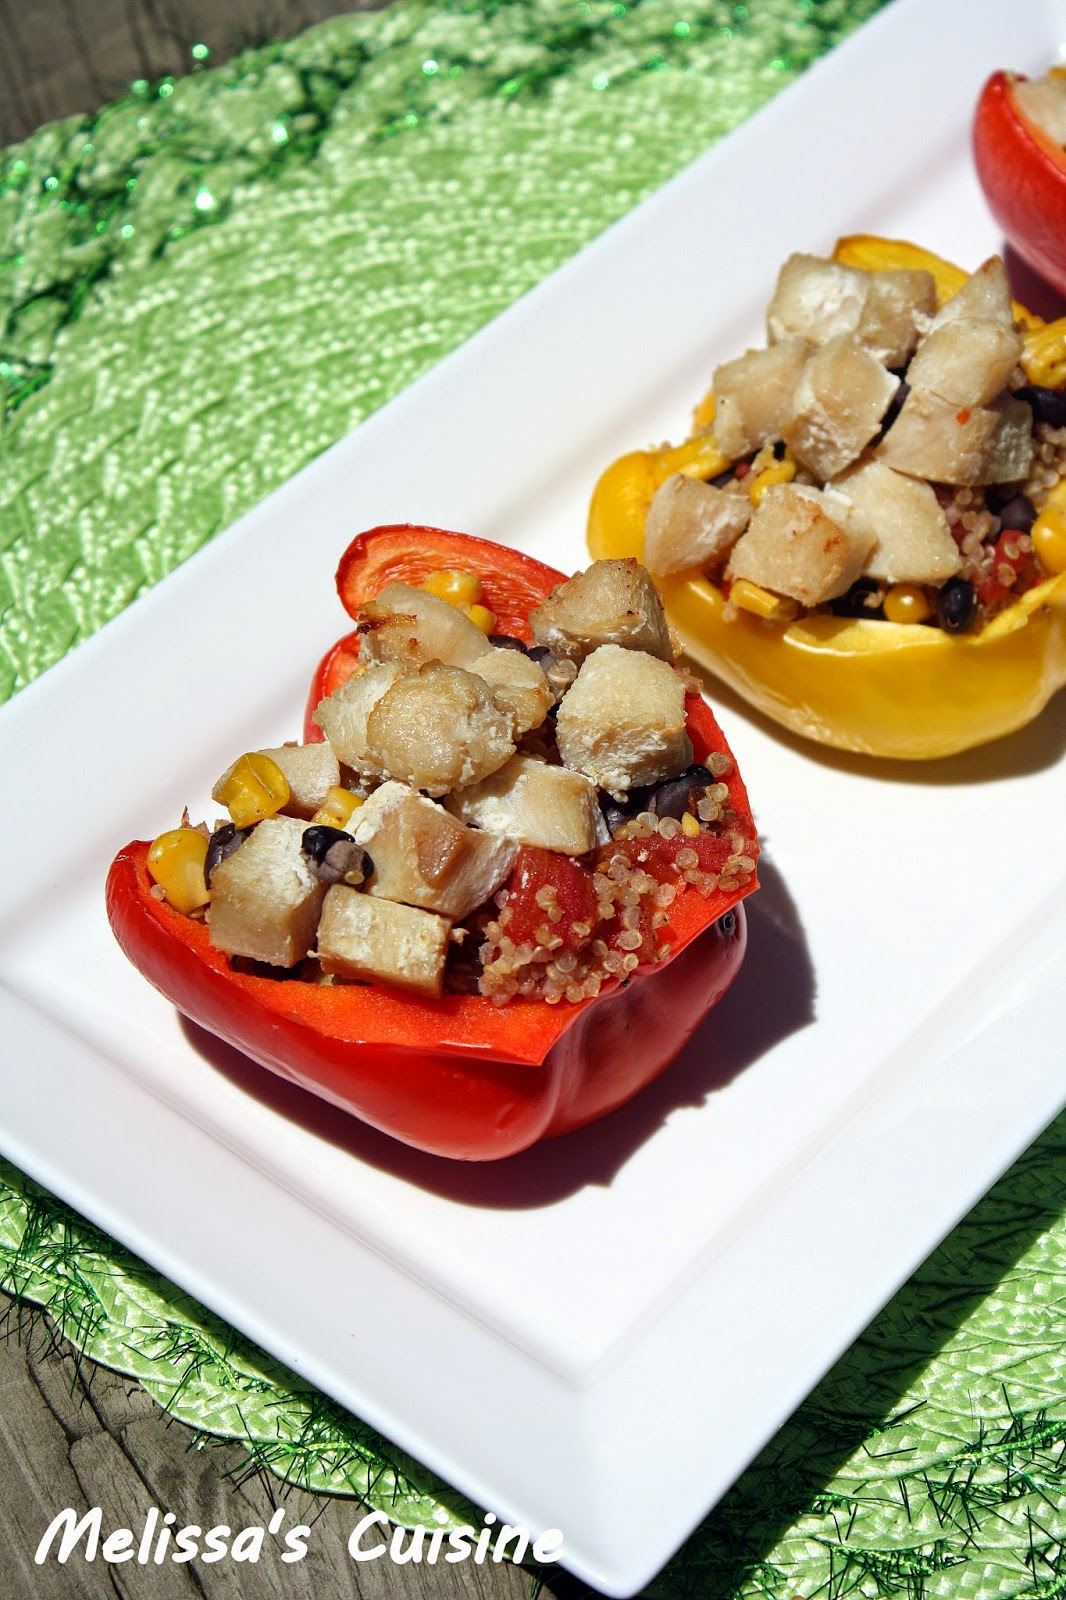 Melissa's Cuisine: Stuffed Peppers